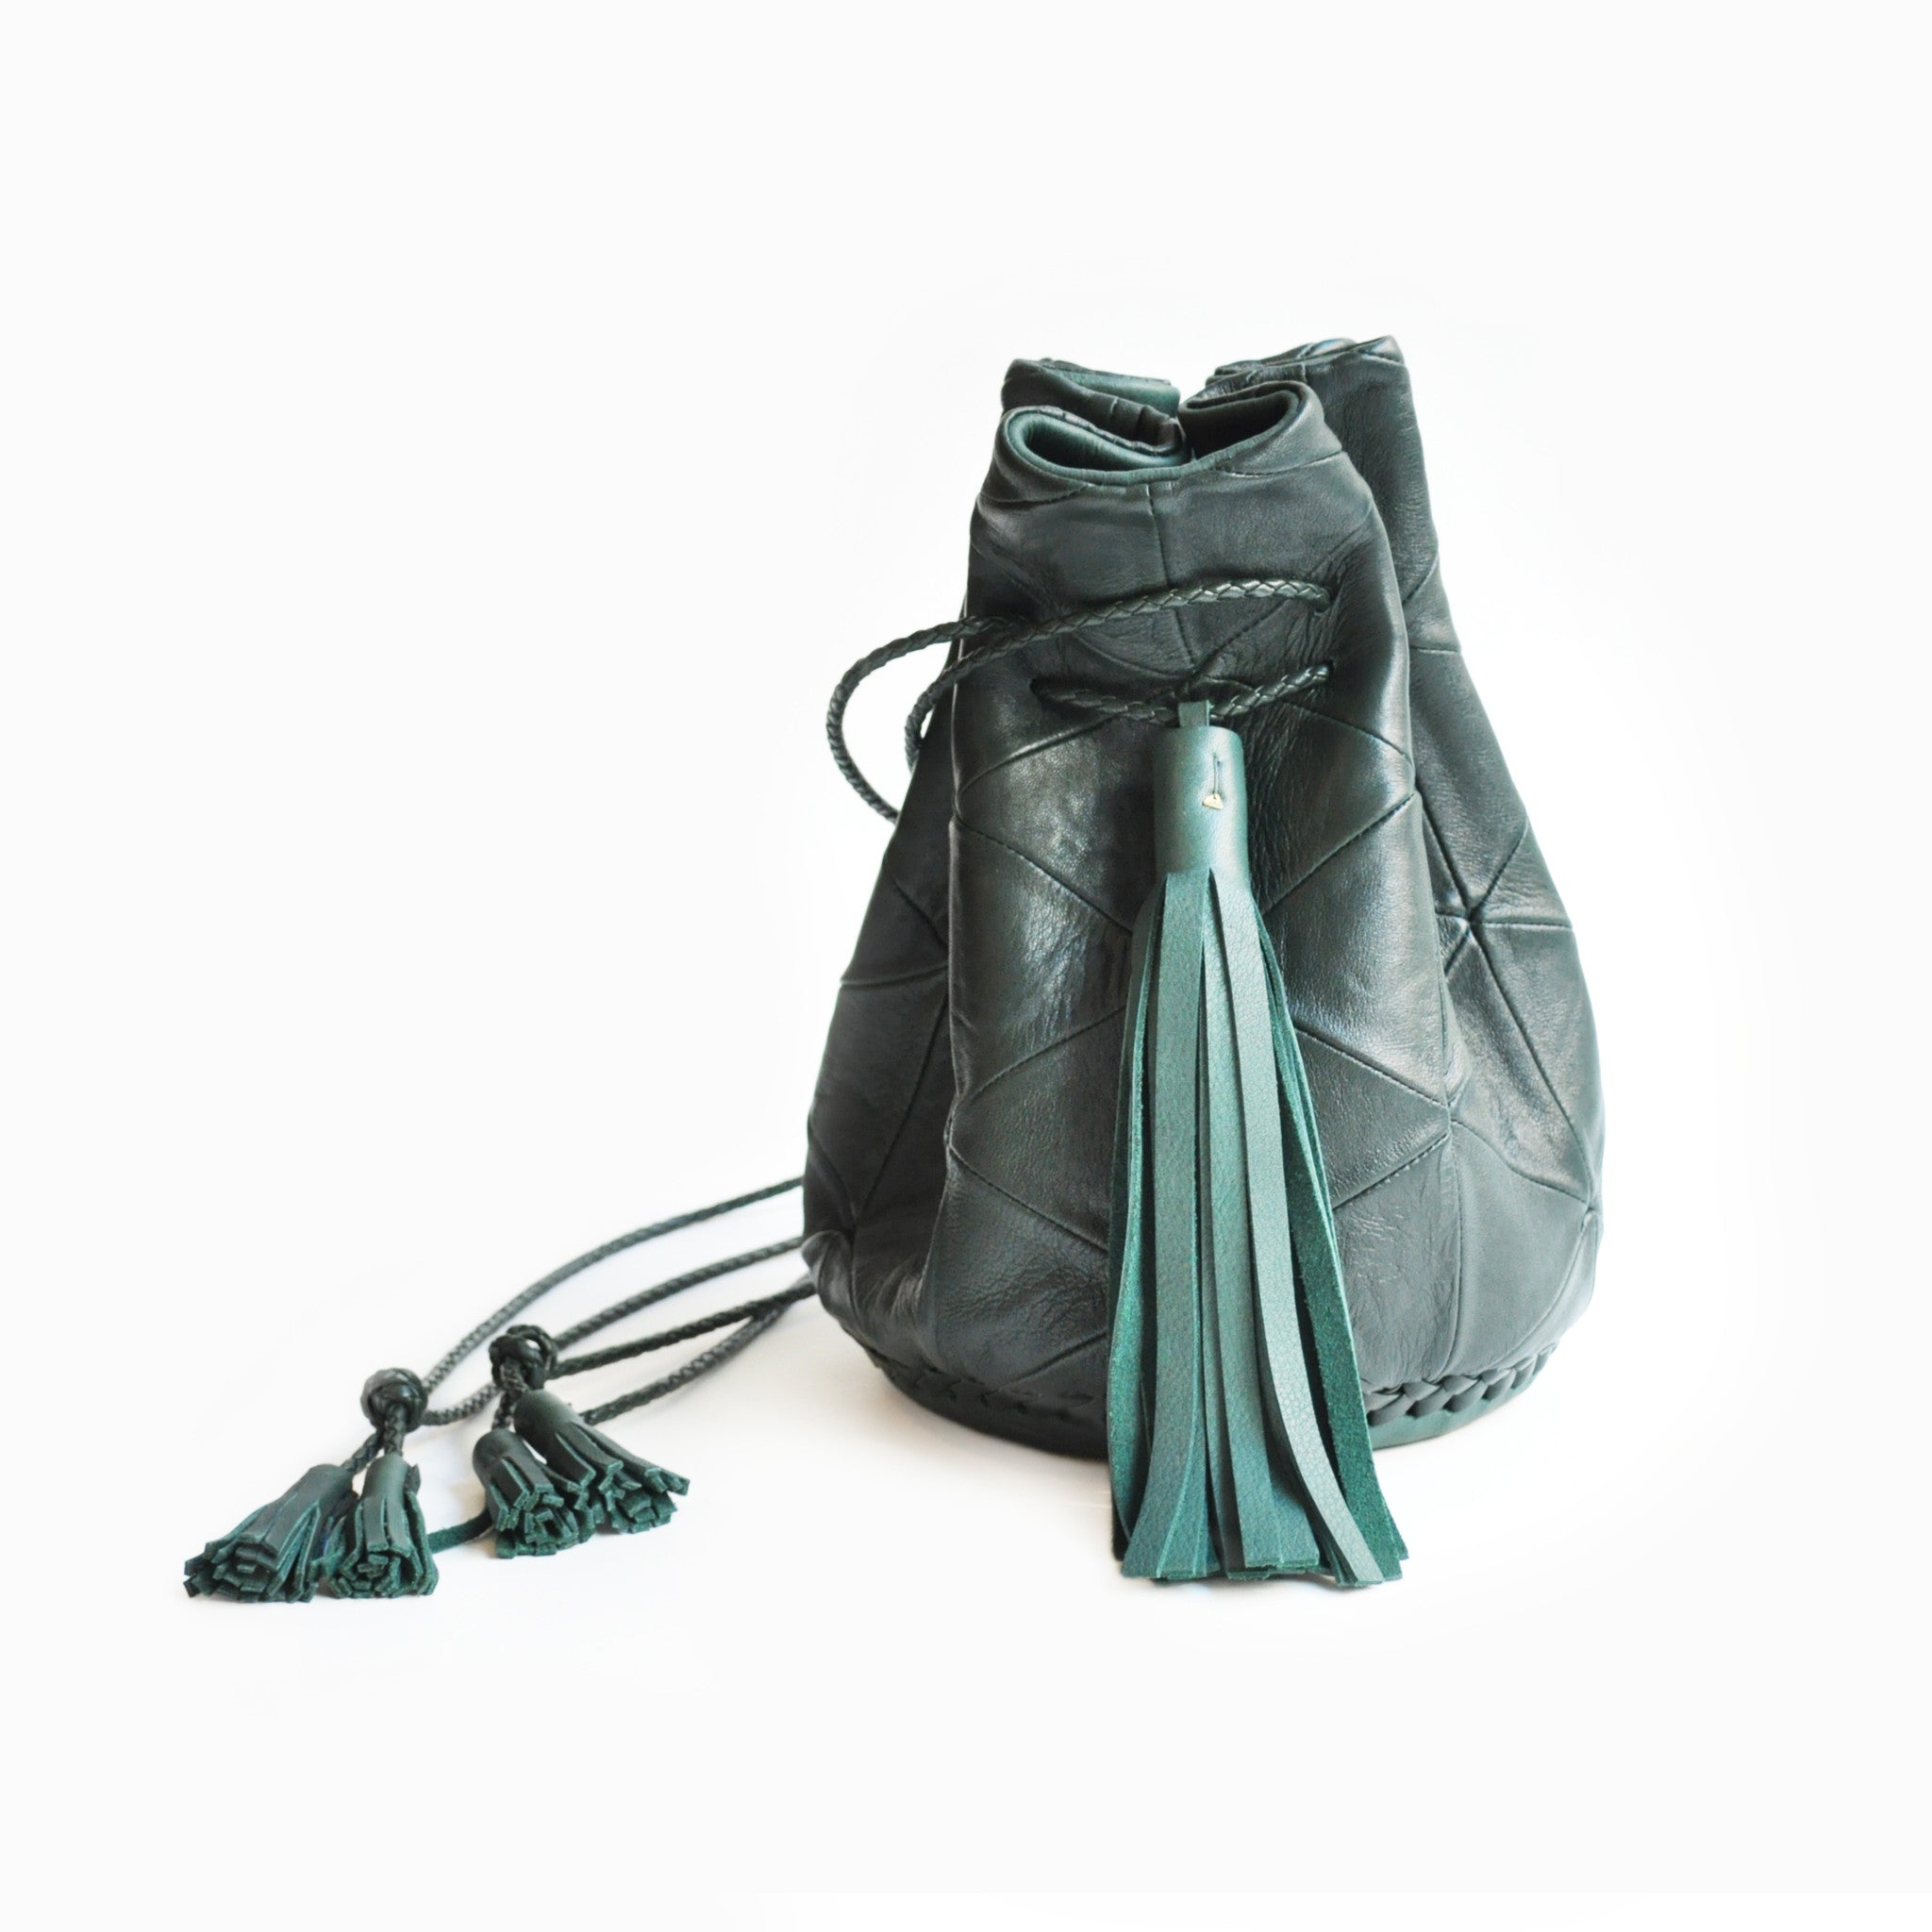 Dark Green Leather Triangle Patchwork Bullet Bag Wendy Nichol Leather Handbag Purse Designer Barneys Barney's Bucket Bag Handmade in NYC New York City High Quality leather Draw String Drawstring Pouch  Large Fringe Tassel Tassels